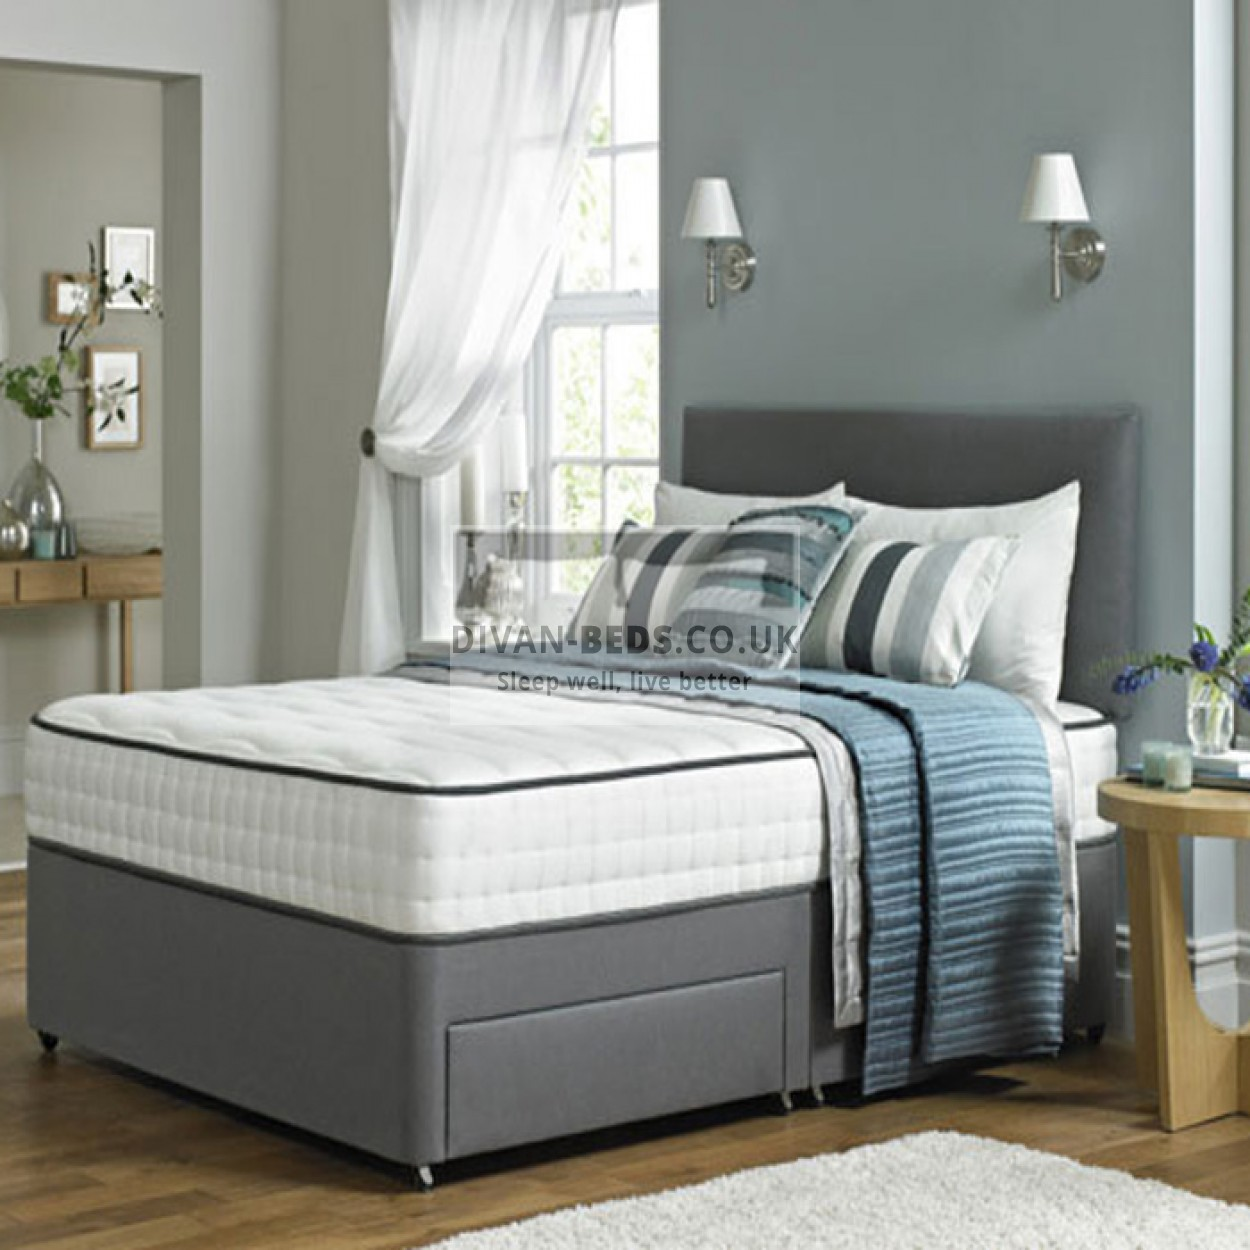 lisa leather divan bed with spring memory foam mattress